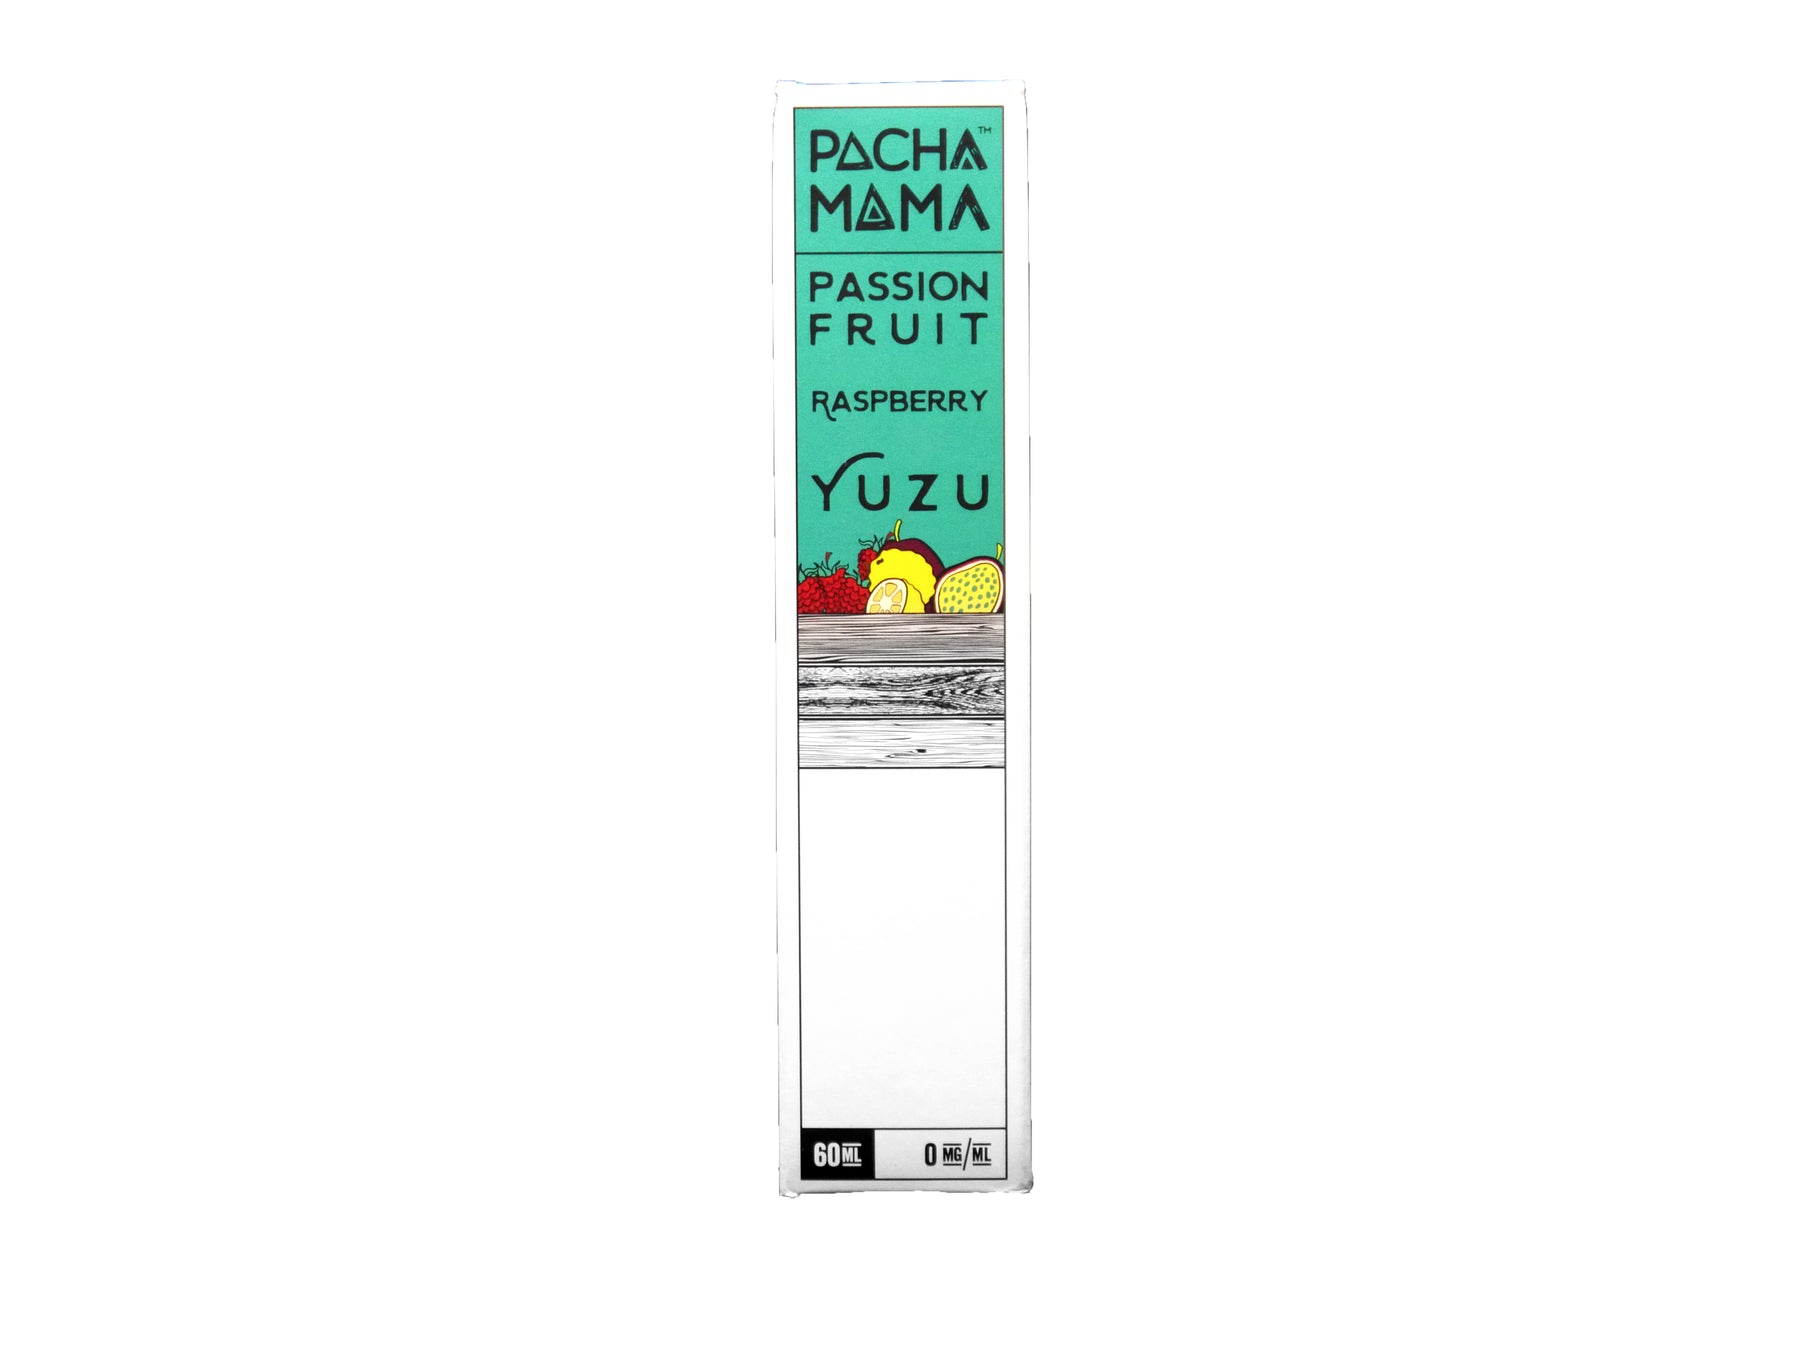 Pacha Mama - 60ml - Passion Fruit Raspberry Yuzu